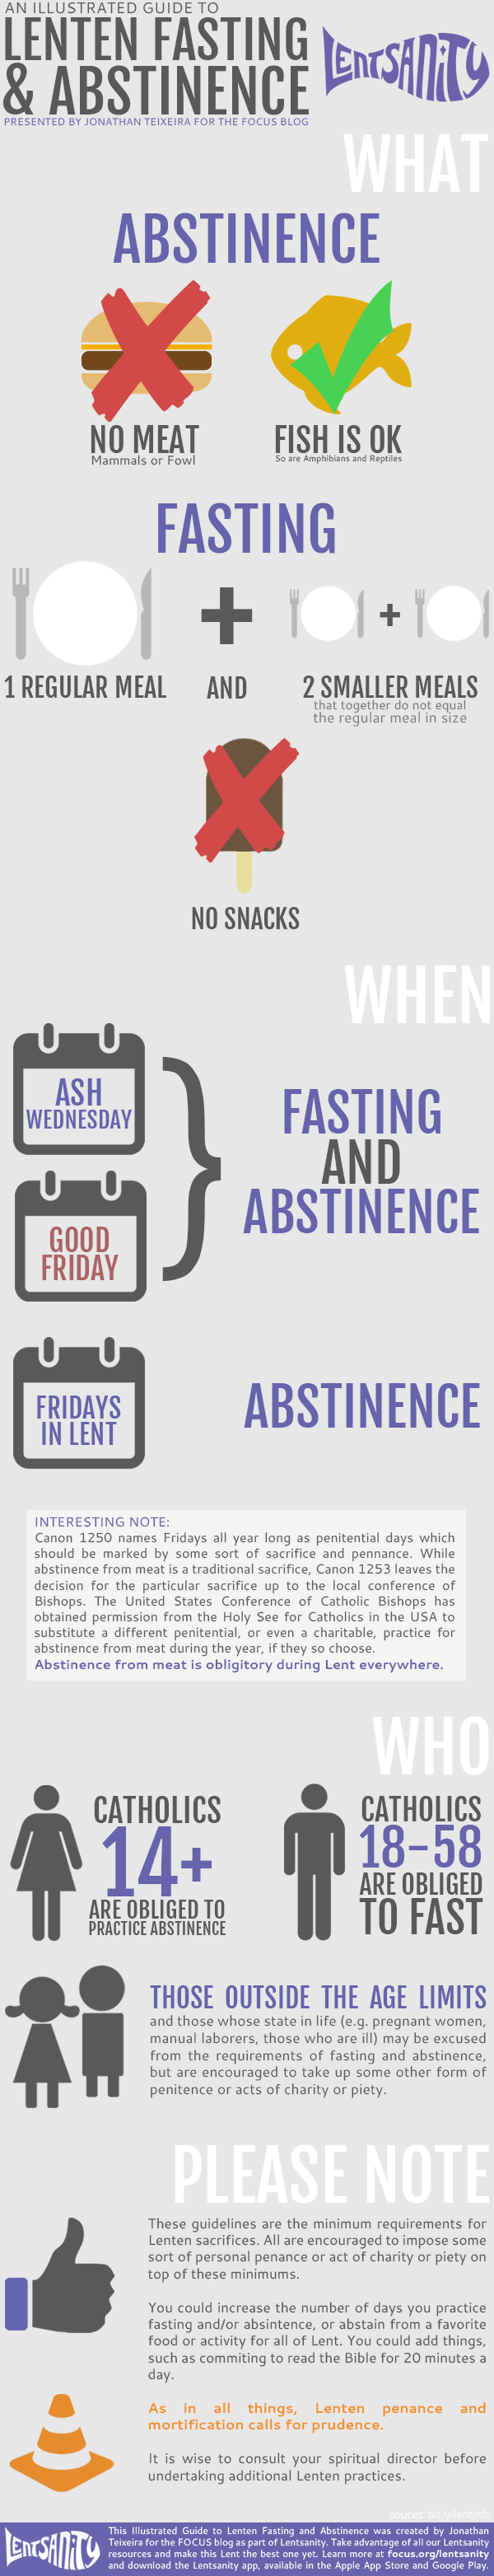 image@http://ucatholic.com/blog/lent-guide/